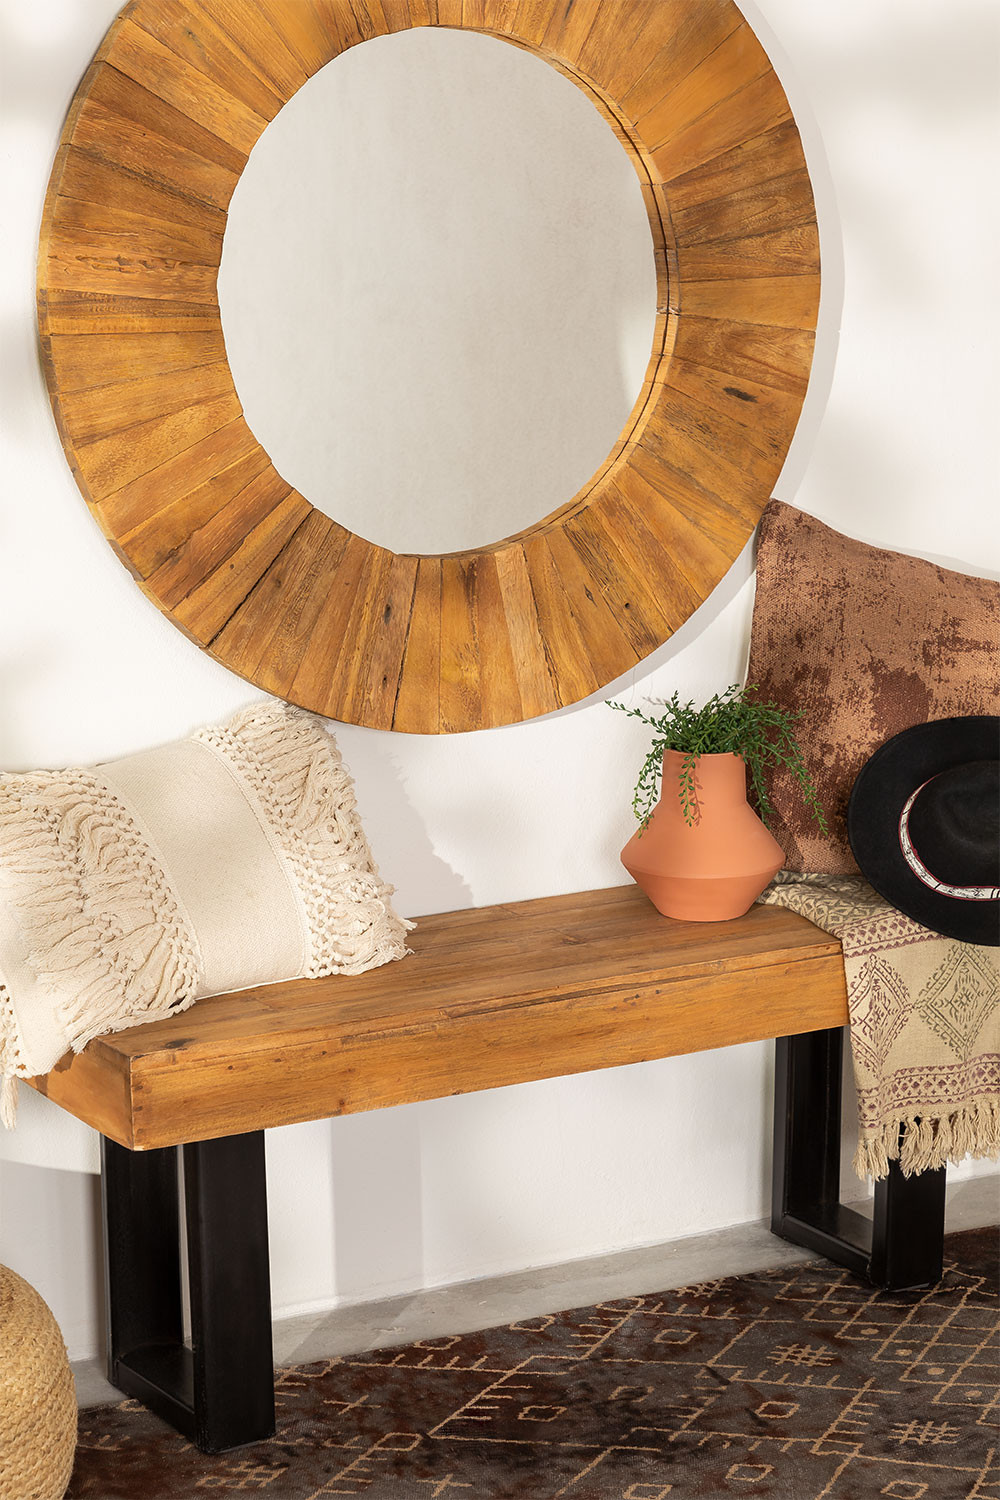 Recycled Wood Bench Bech, gallery image 1